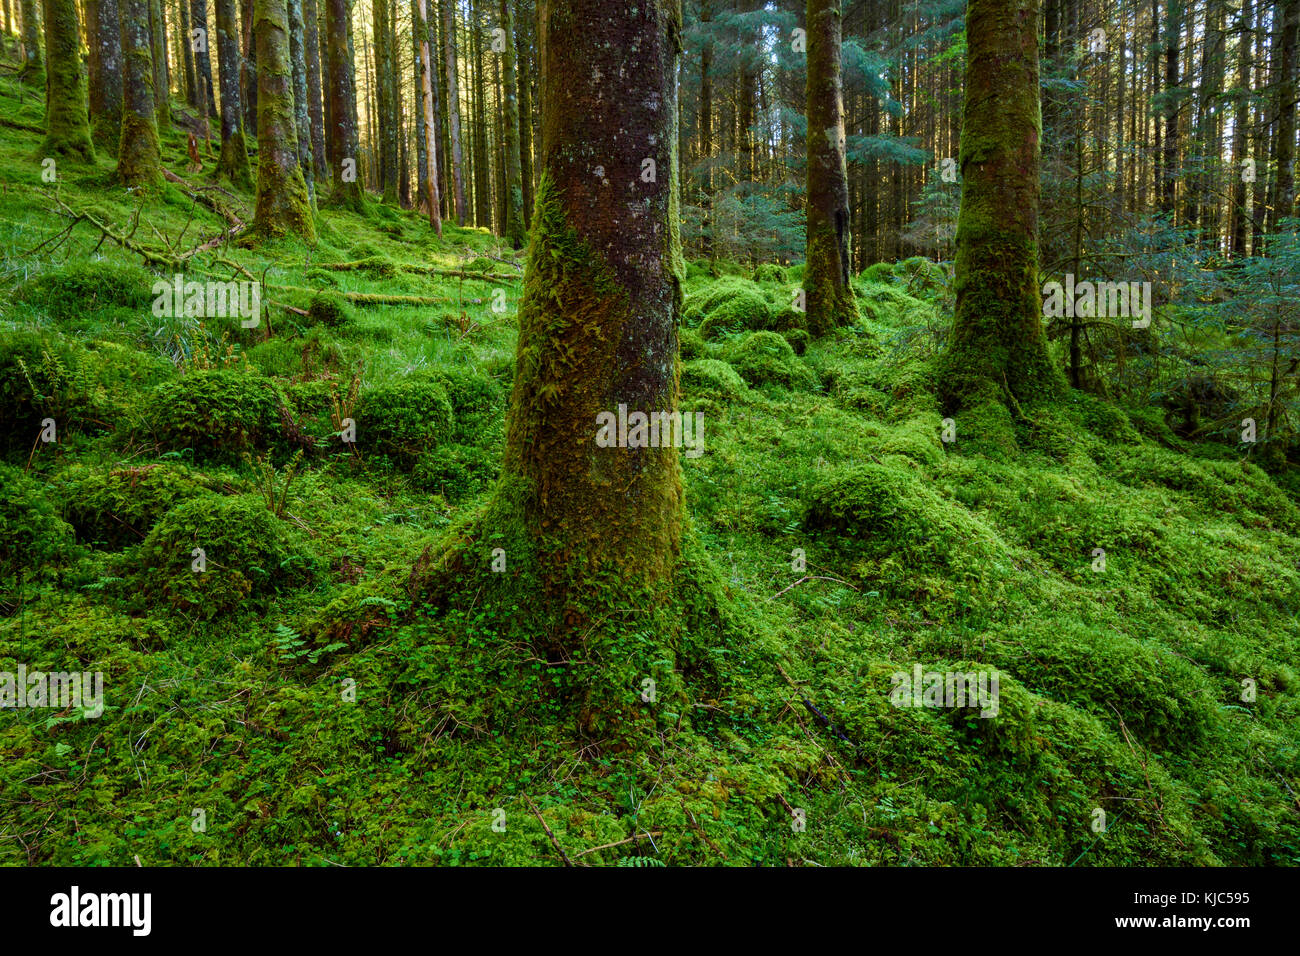 Strong mossy tree trunks and forest floor in a conifer forest at Loch Awe in Argyll and Bute in Scotland - Stock Image